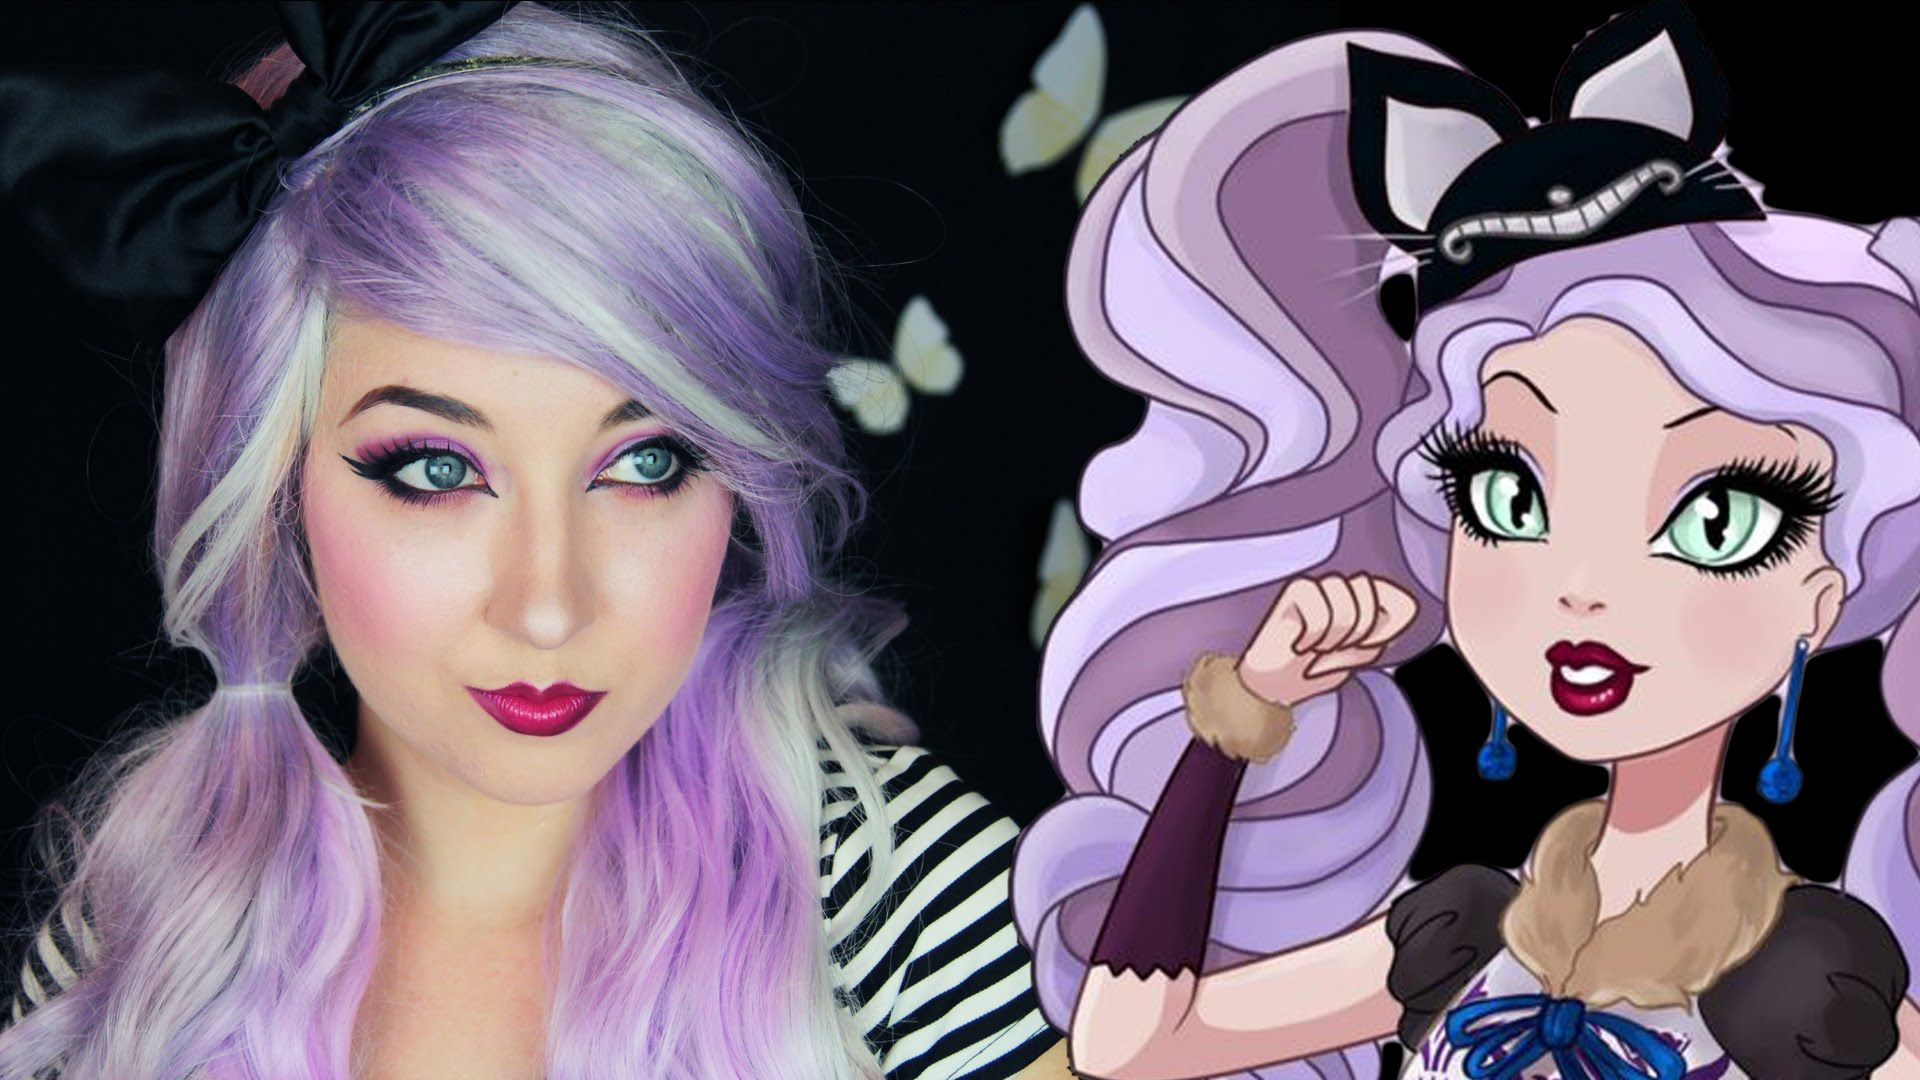 Kitty cheshire ever after high makeup tutorial halloween kitty cheshire ever after high makeup tutorial baditri Choice Image